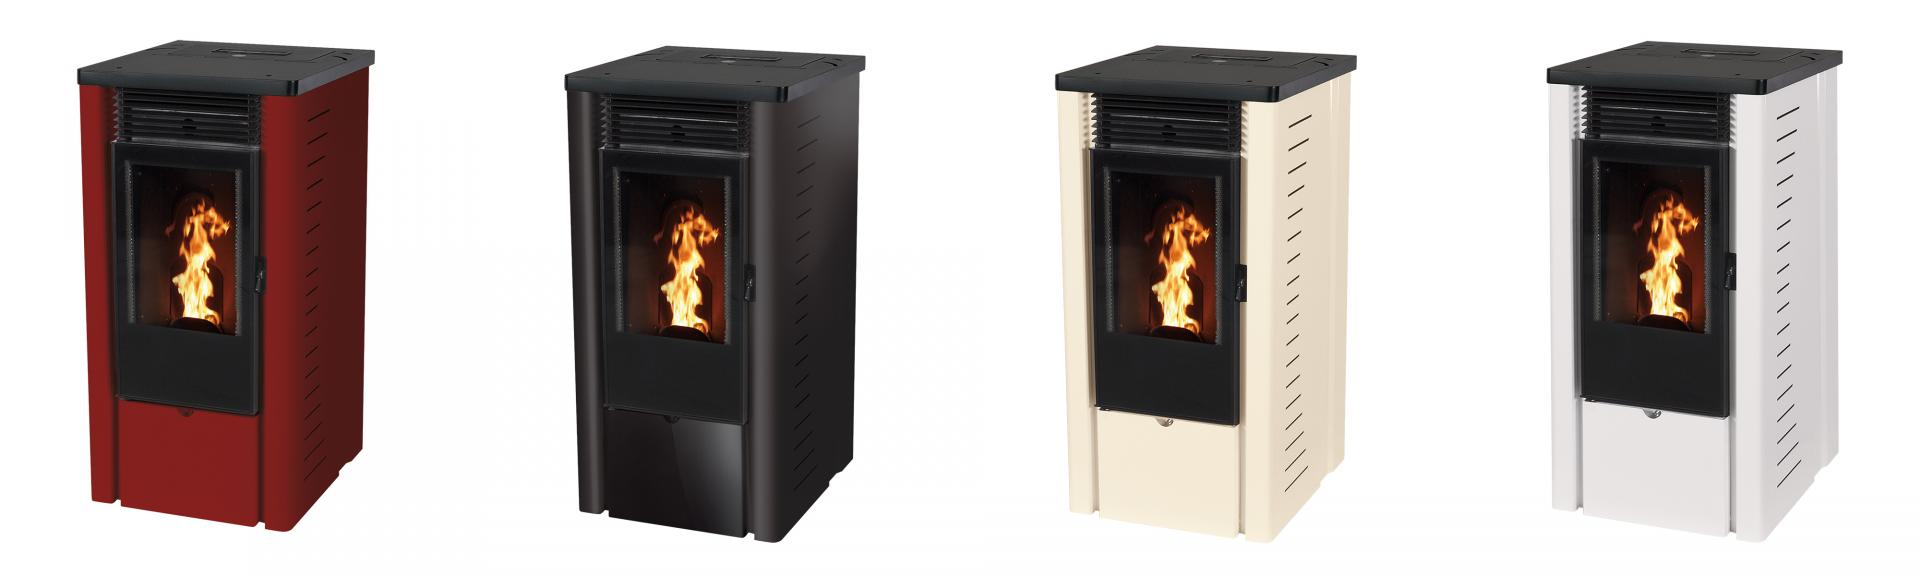 Couleur mode le stove industry pgve